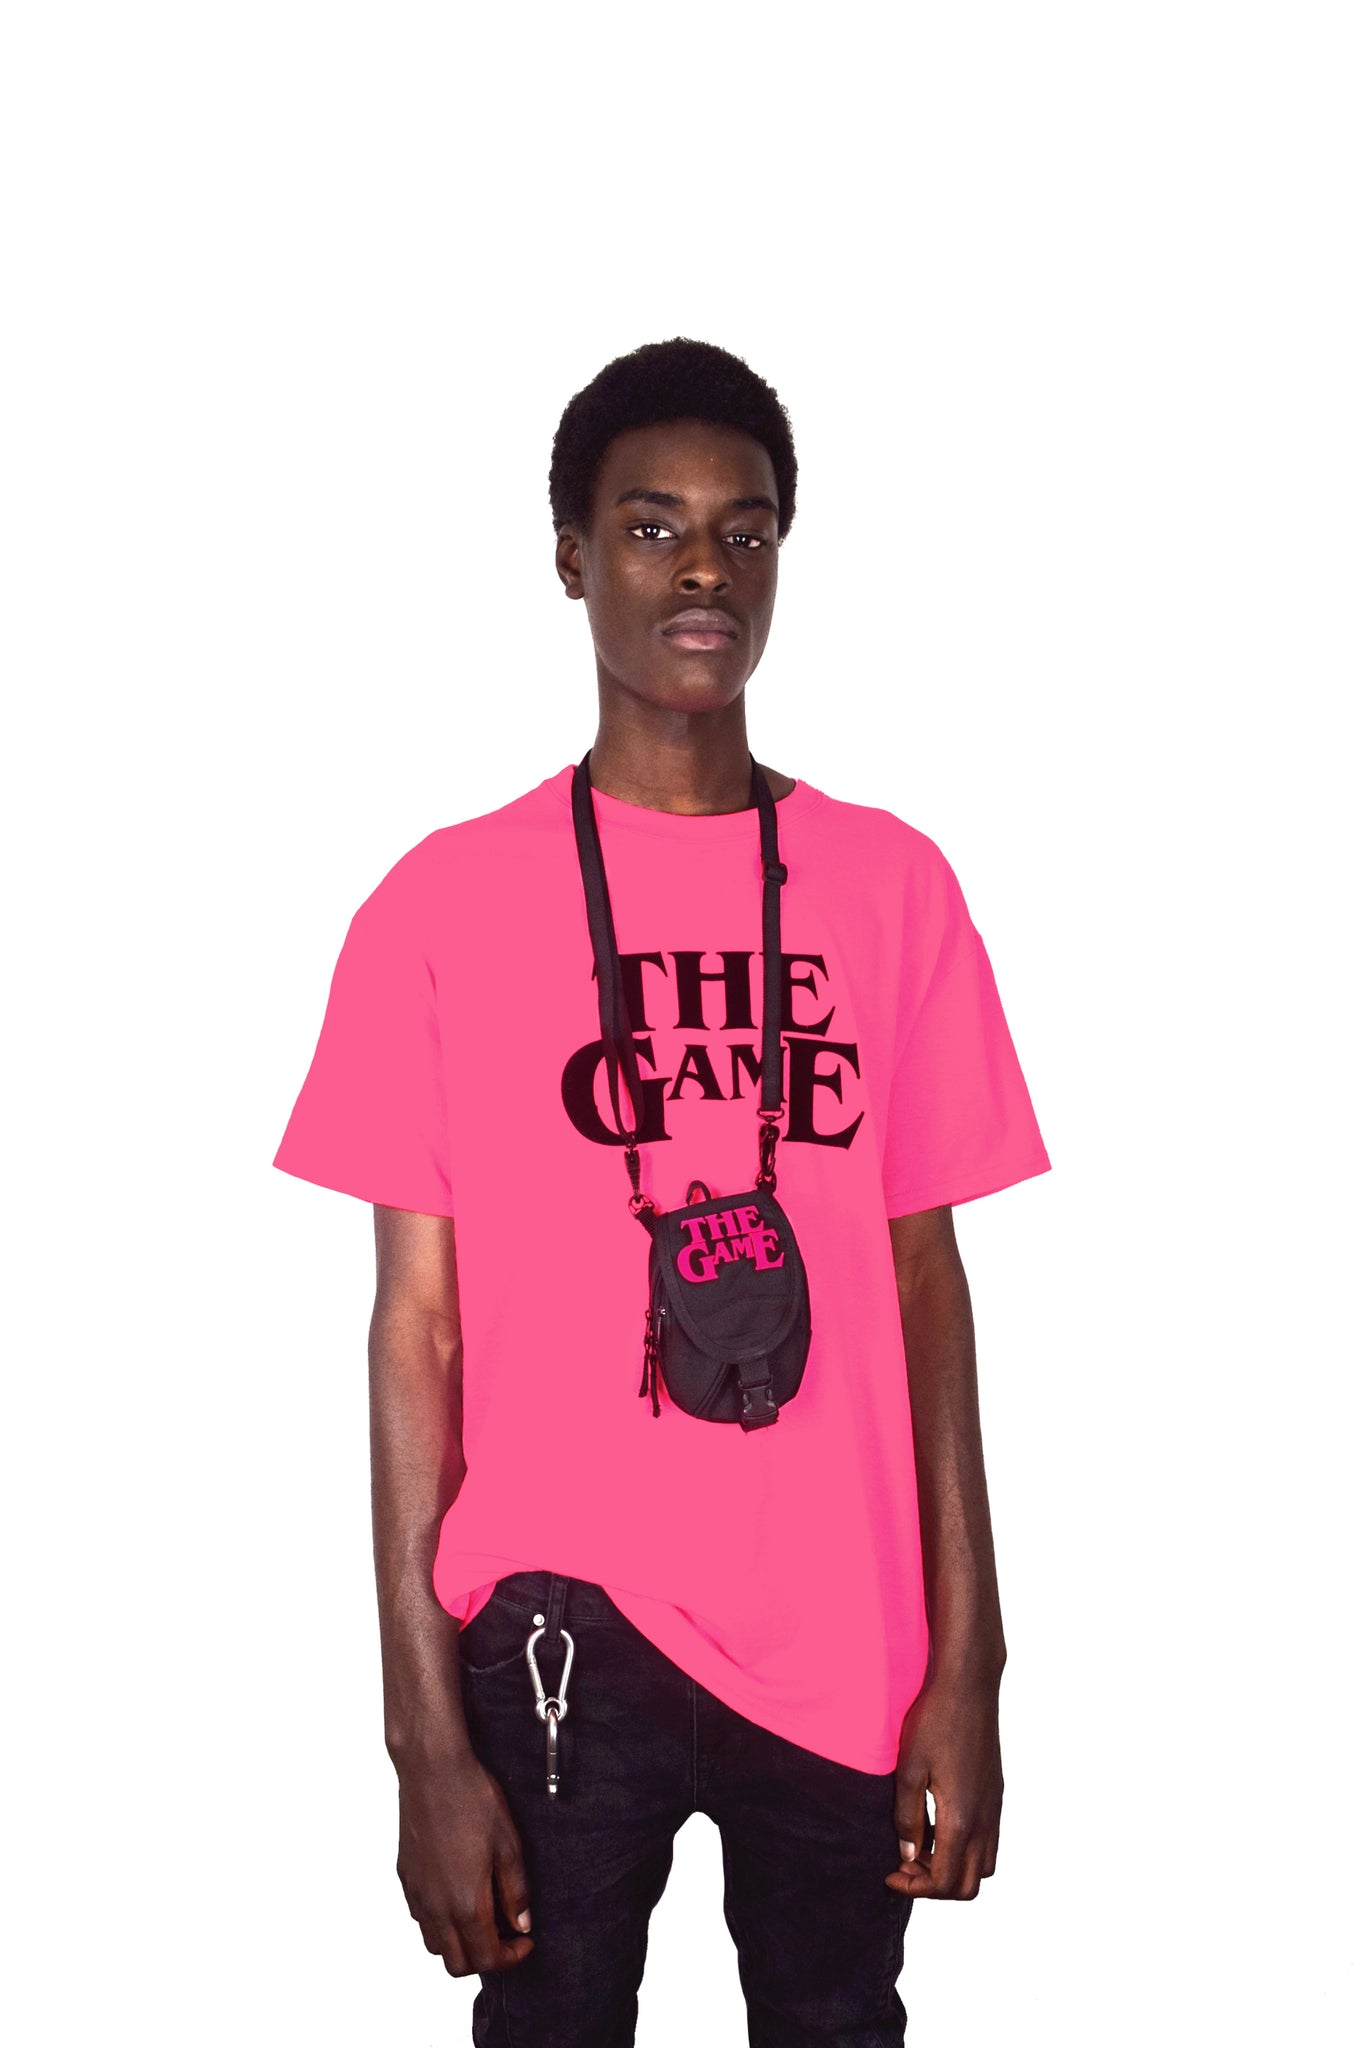 THE GAME IS THE GAME T-SHIRT (PINK)